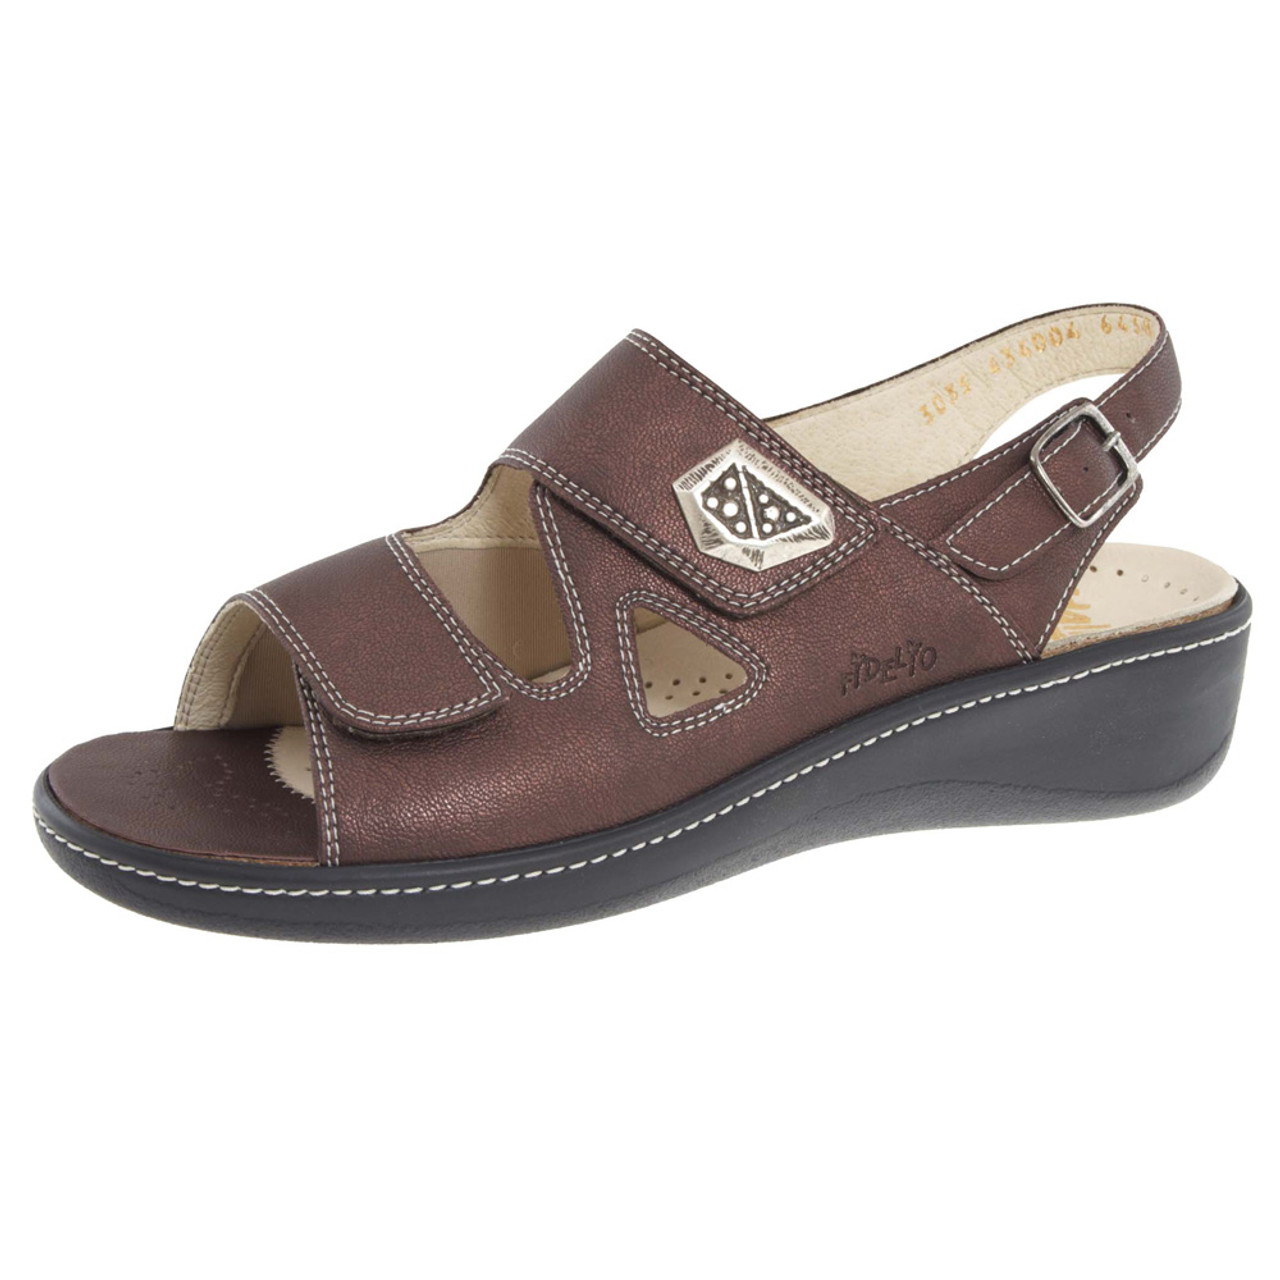 For You Need Sandals Are Bunion SandalsFidelio WDY2bH9EIe